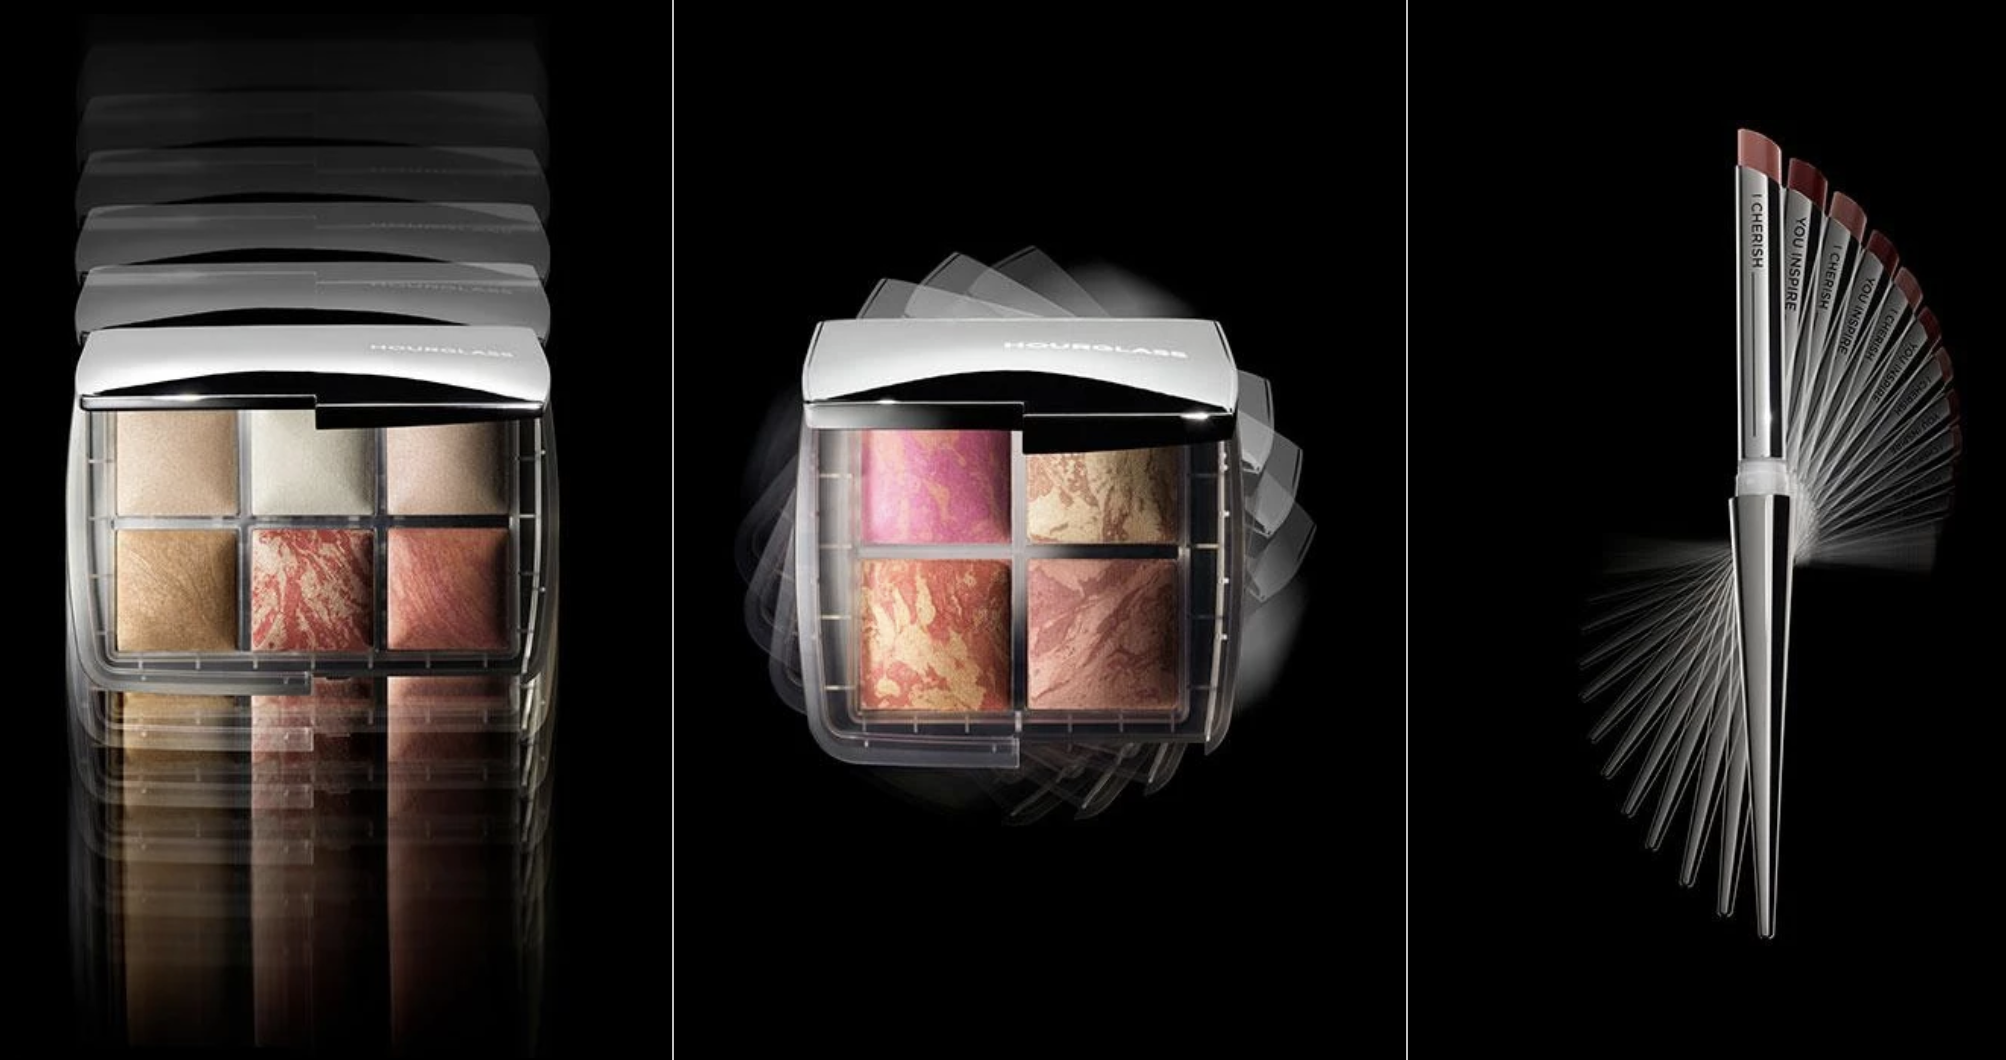 Product shots of Hourglass' Ghost Holiday Collection, including the Ambient Lighting Edit, Ambient Lighting Blush Quad, and Confession Refillable Lipstick Duo.